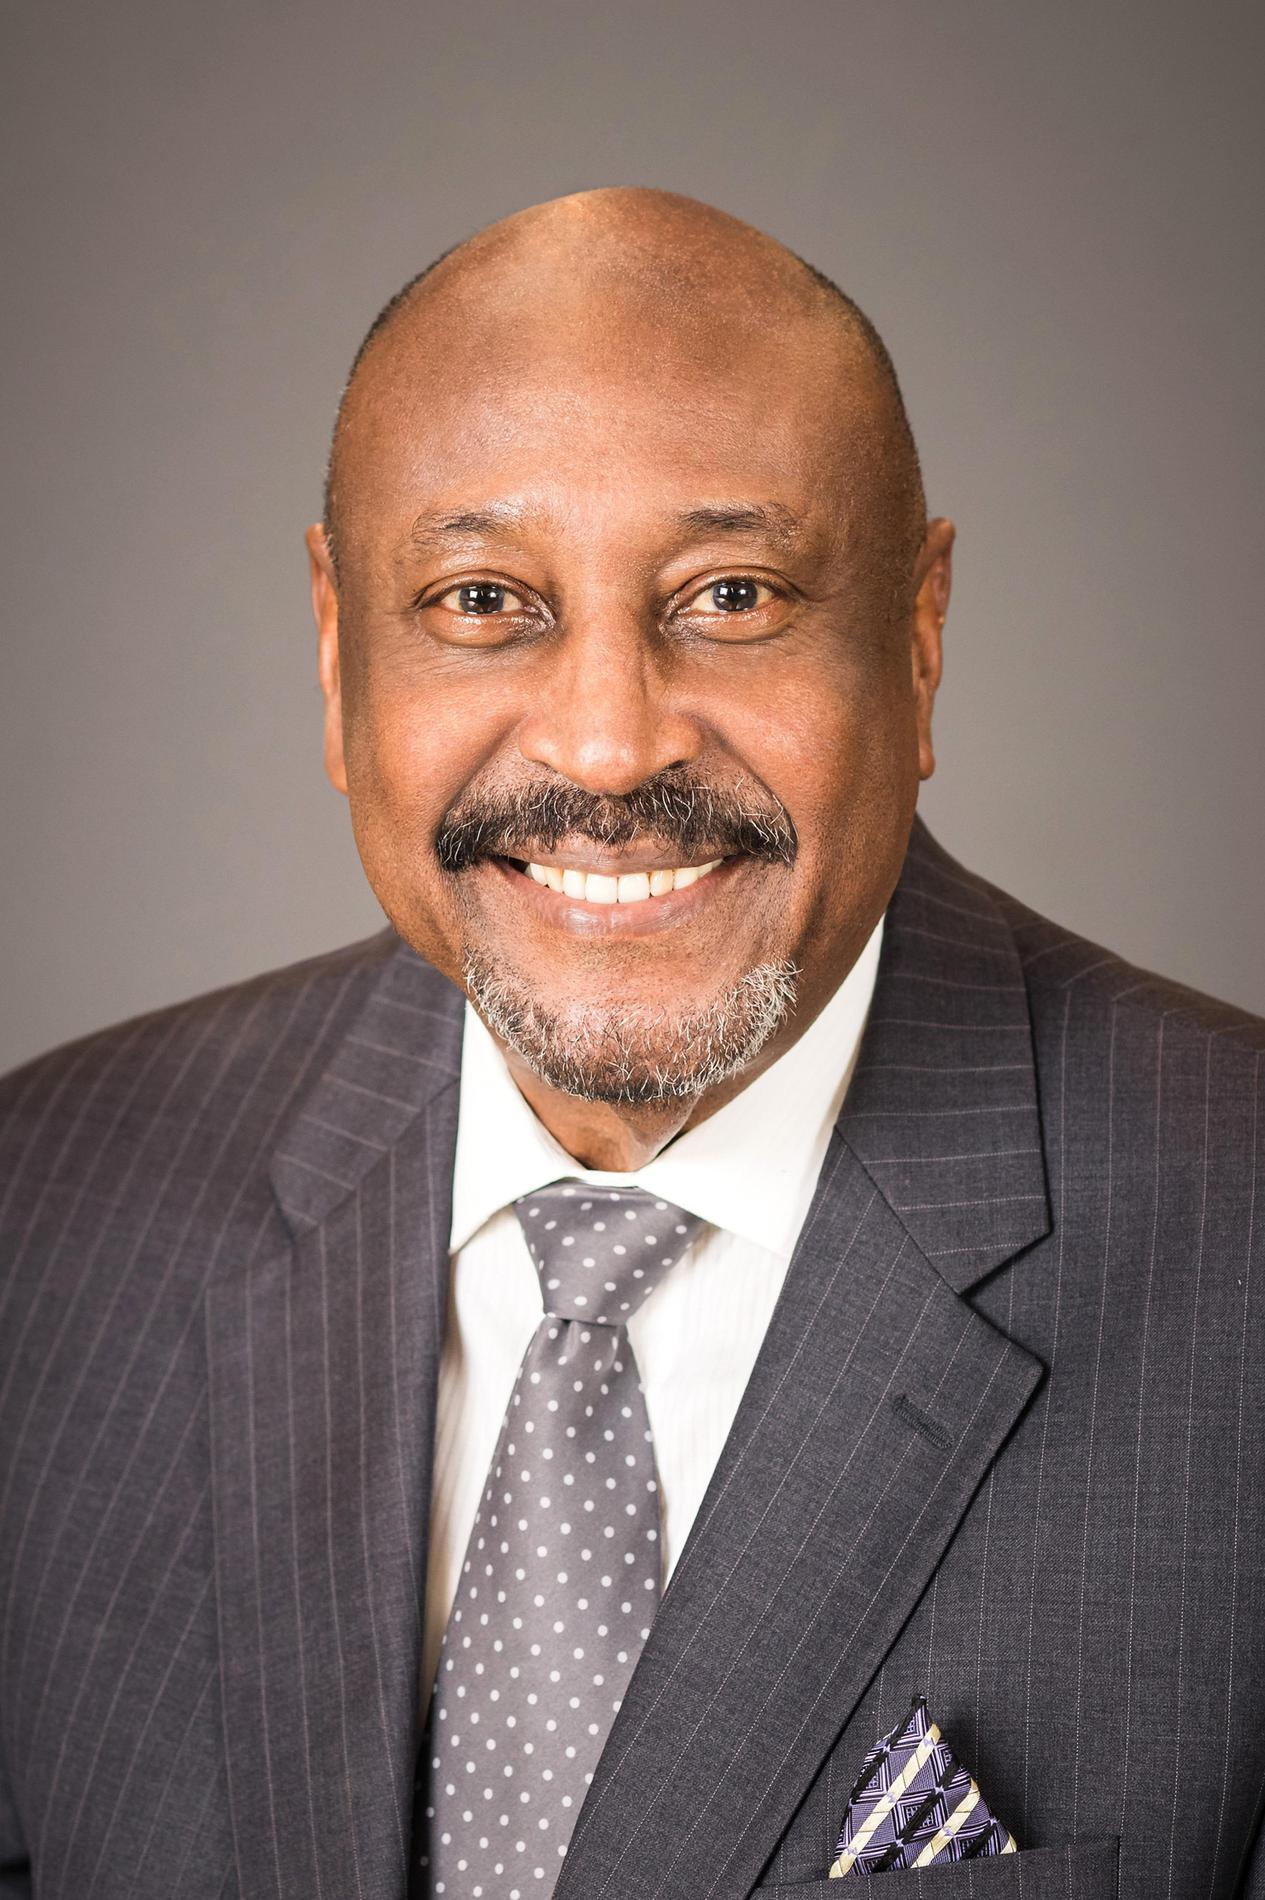 Photo of Lem Daniels - Morgan Stanley